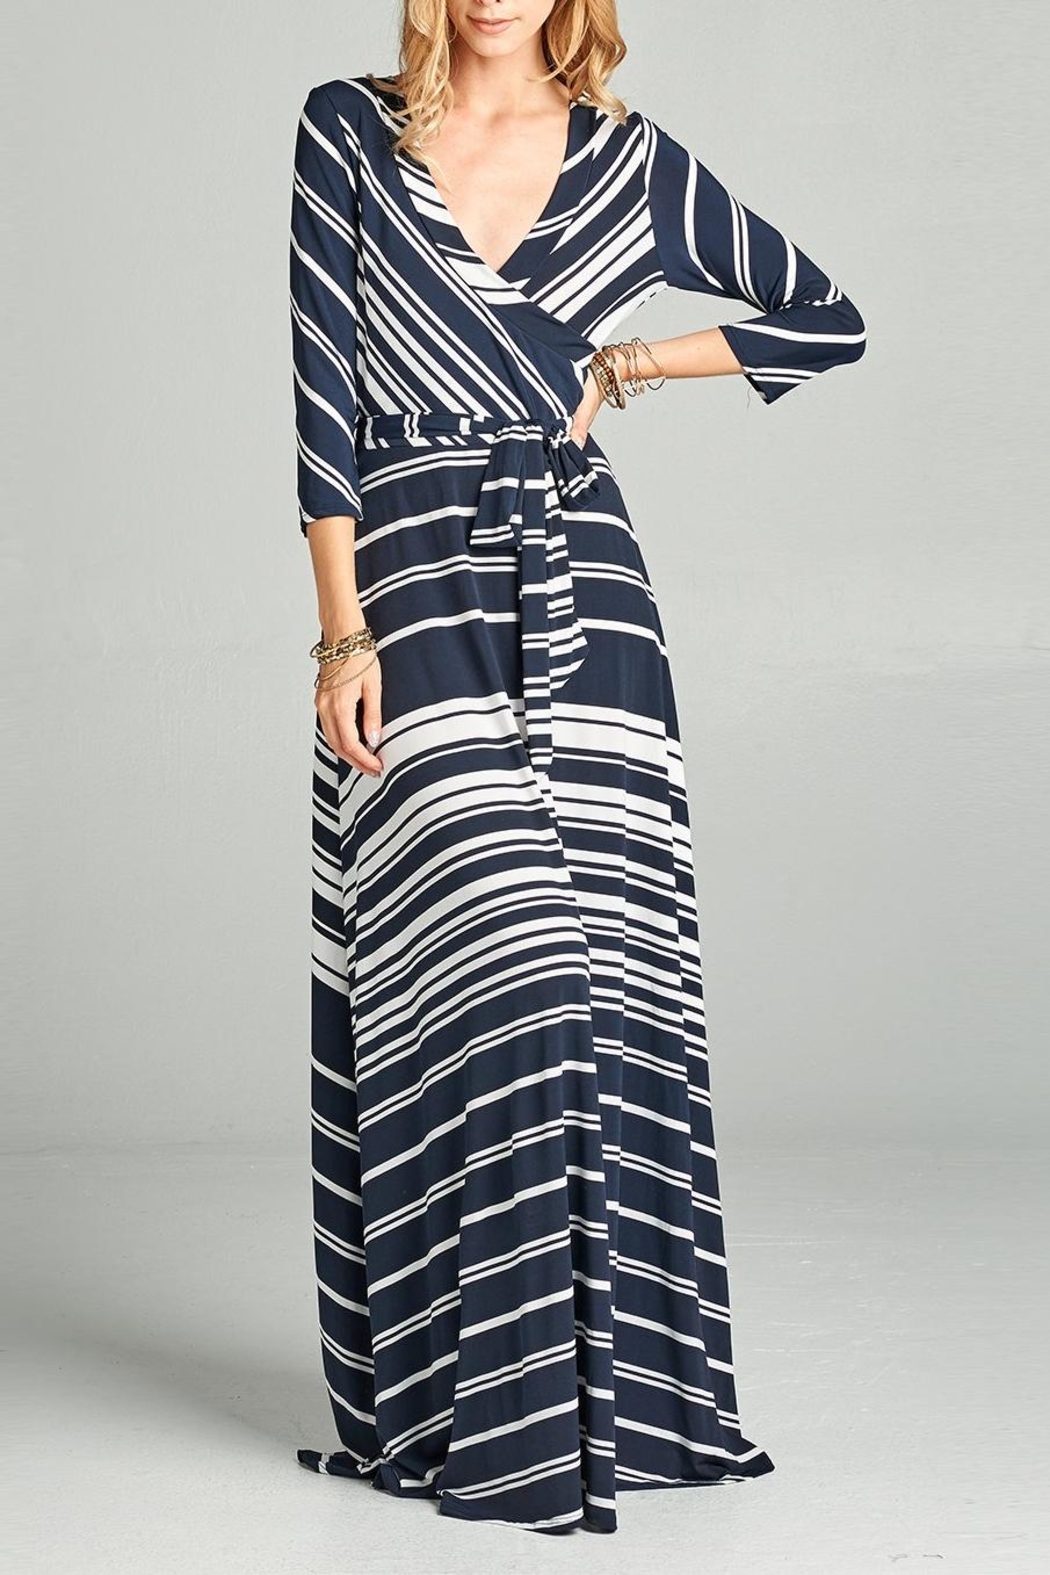 Love Kuza Striped Venechia Wrap Dress - Main Image